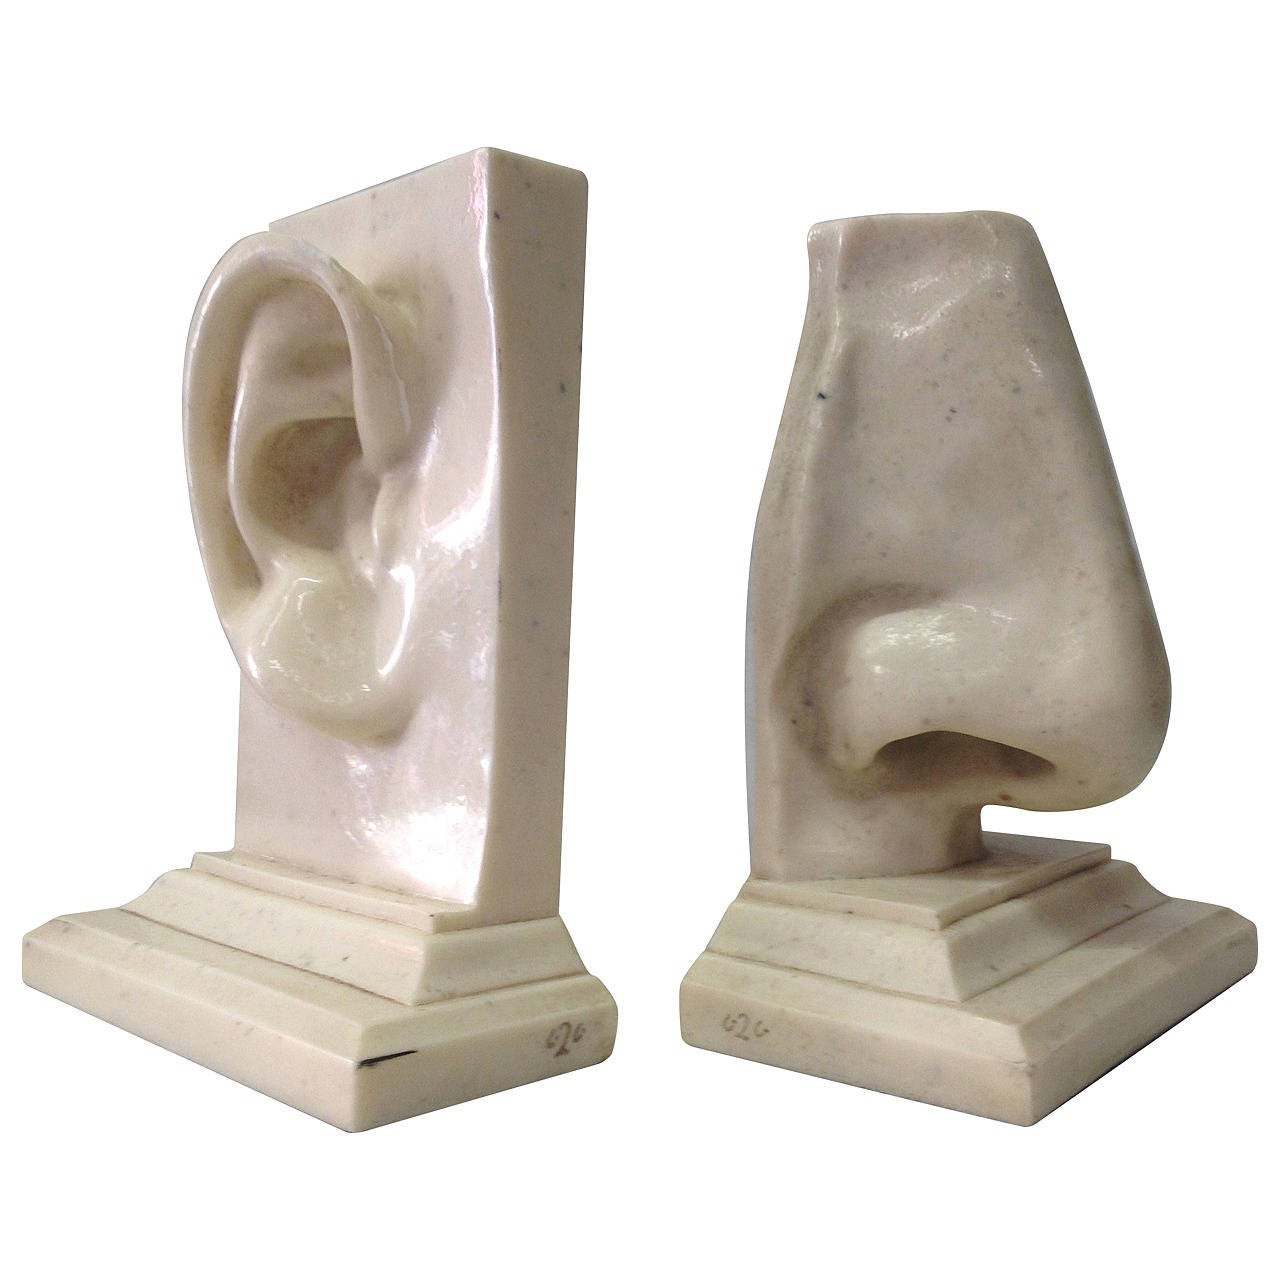 pair of italian figural resin bookends at stdibs - pair of italian figural resin bookends